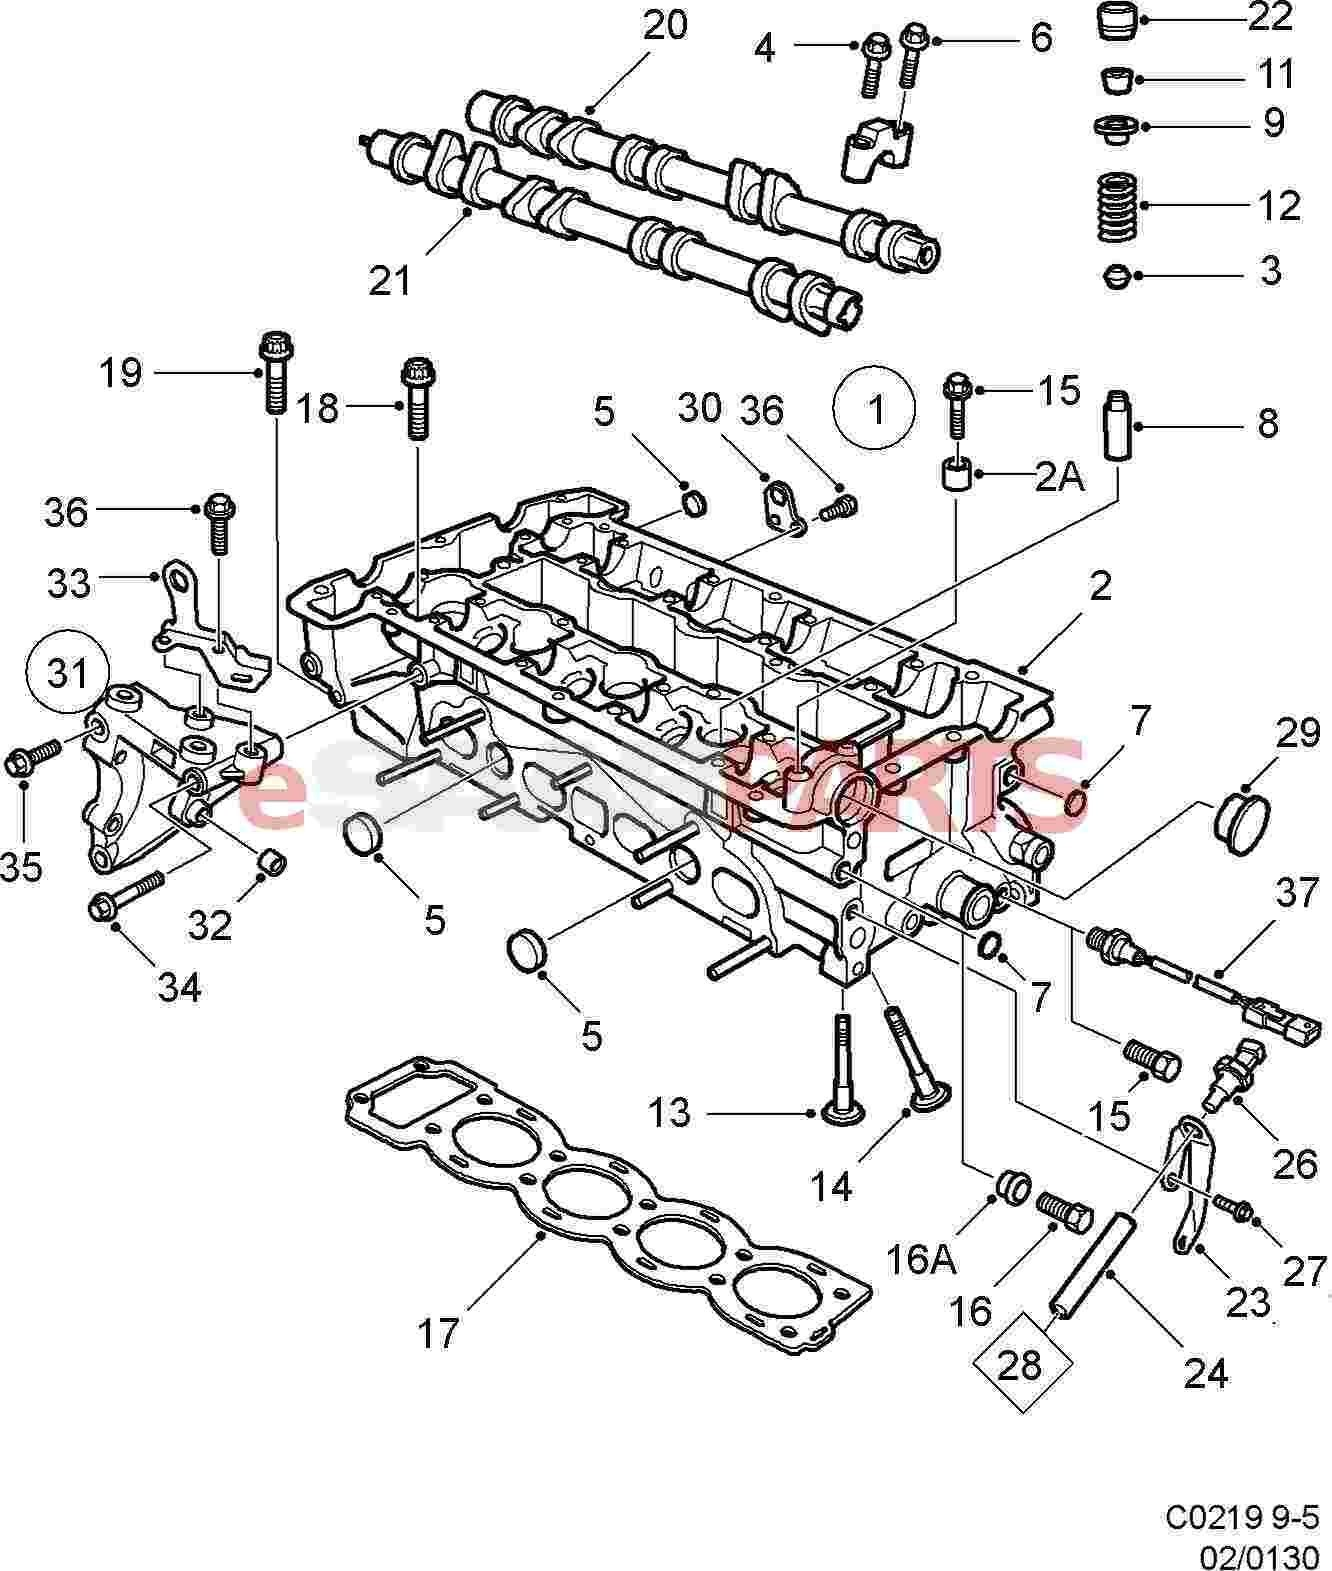 2004 Gmc Envoy Transfer Case Motor Engine Diagram